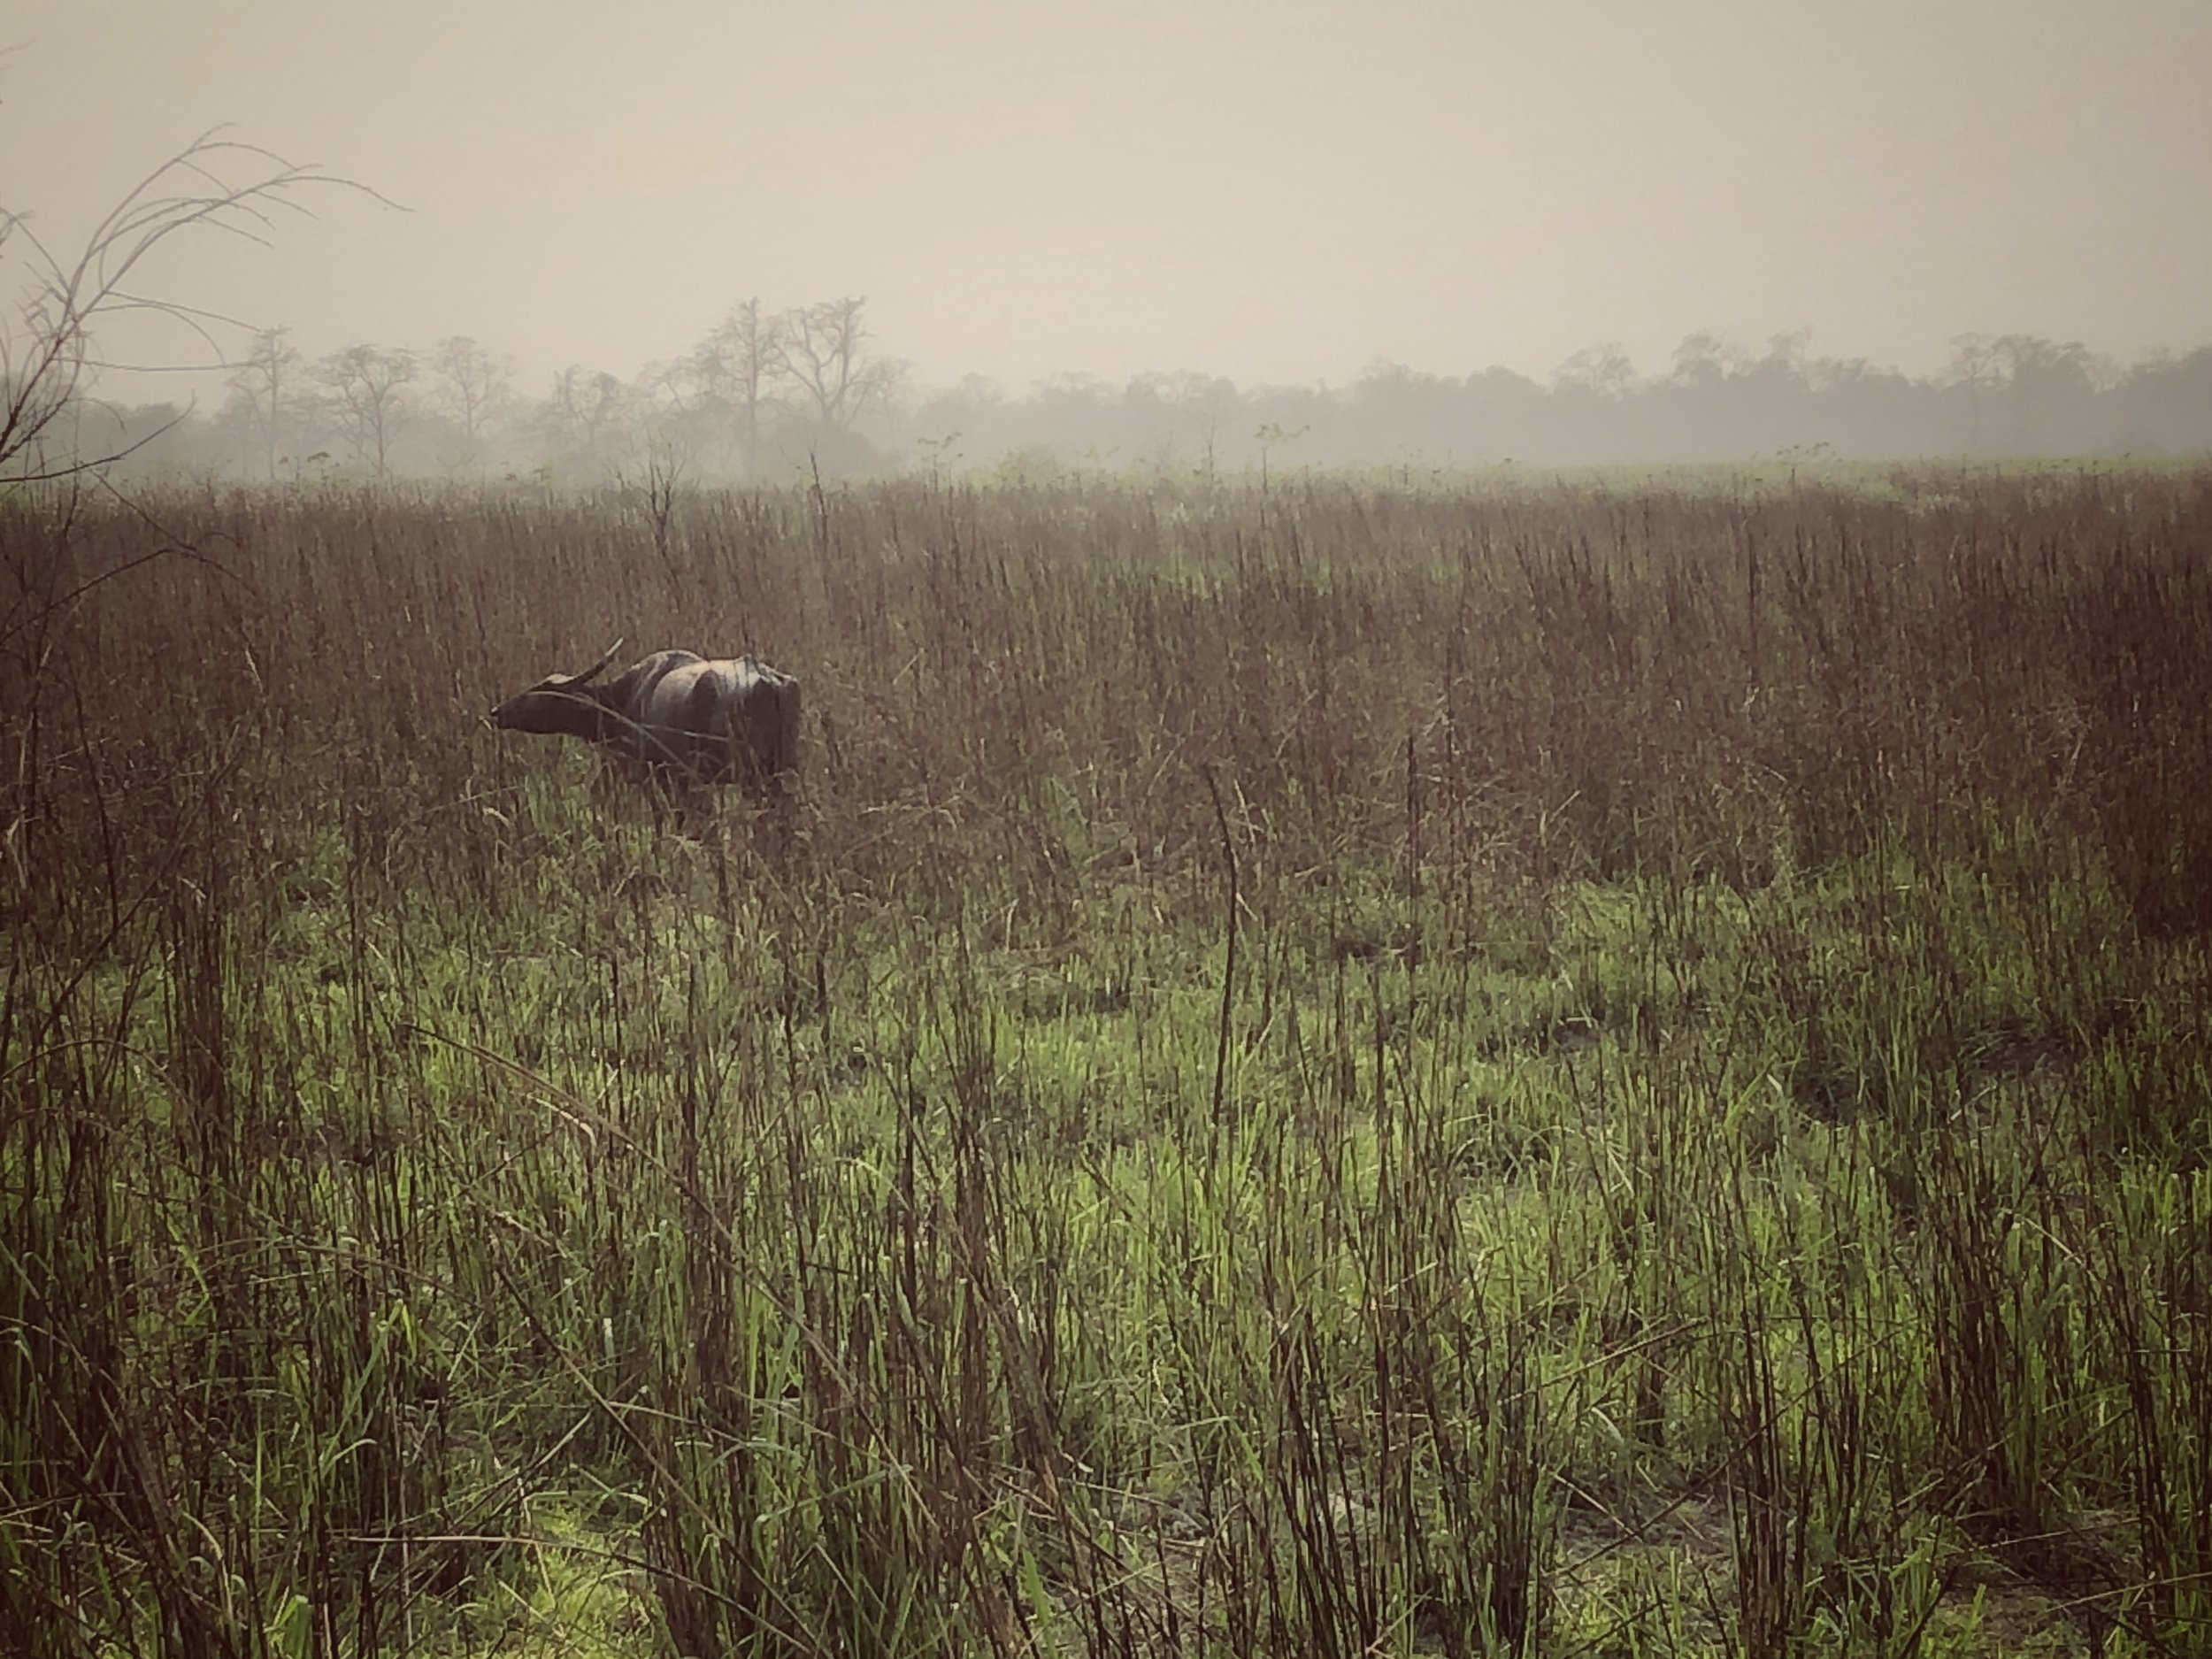 Water Buffalo amidst burnt elephant grass - the park is managed to provide the best habitat for wildlife and is closed from May to November